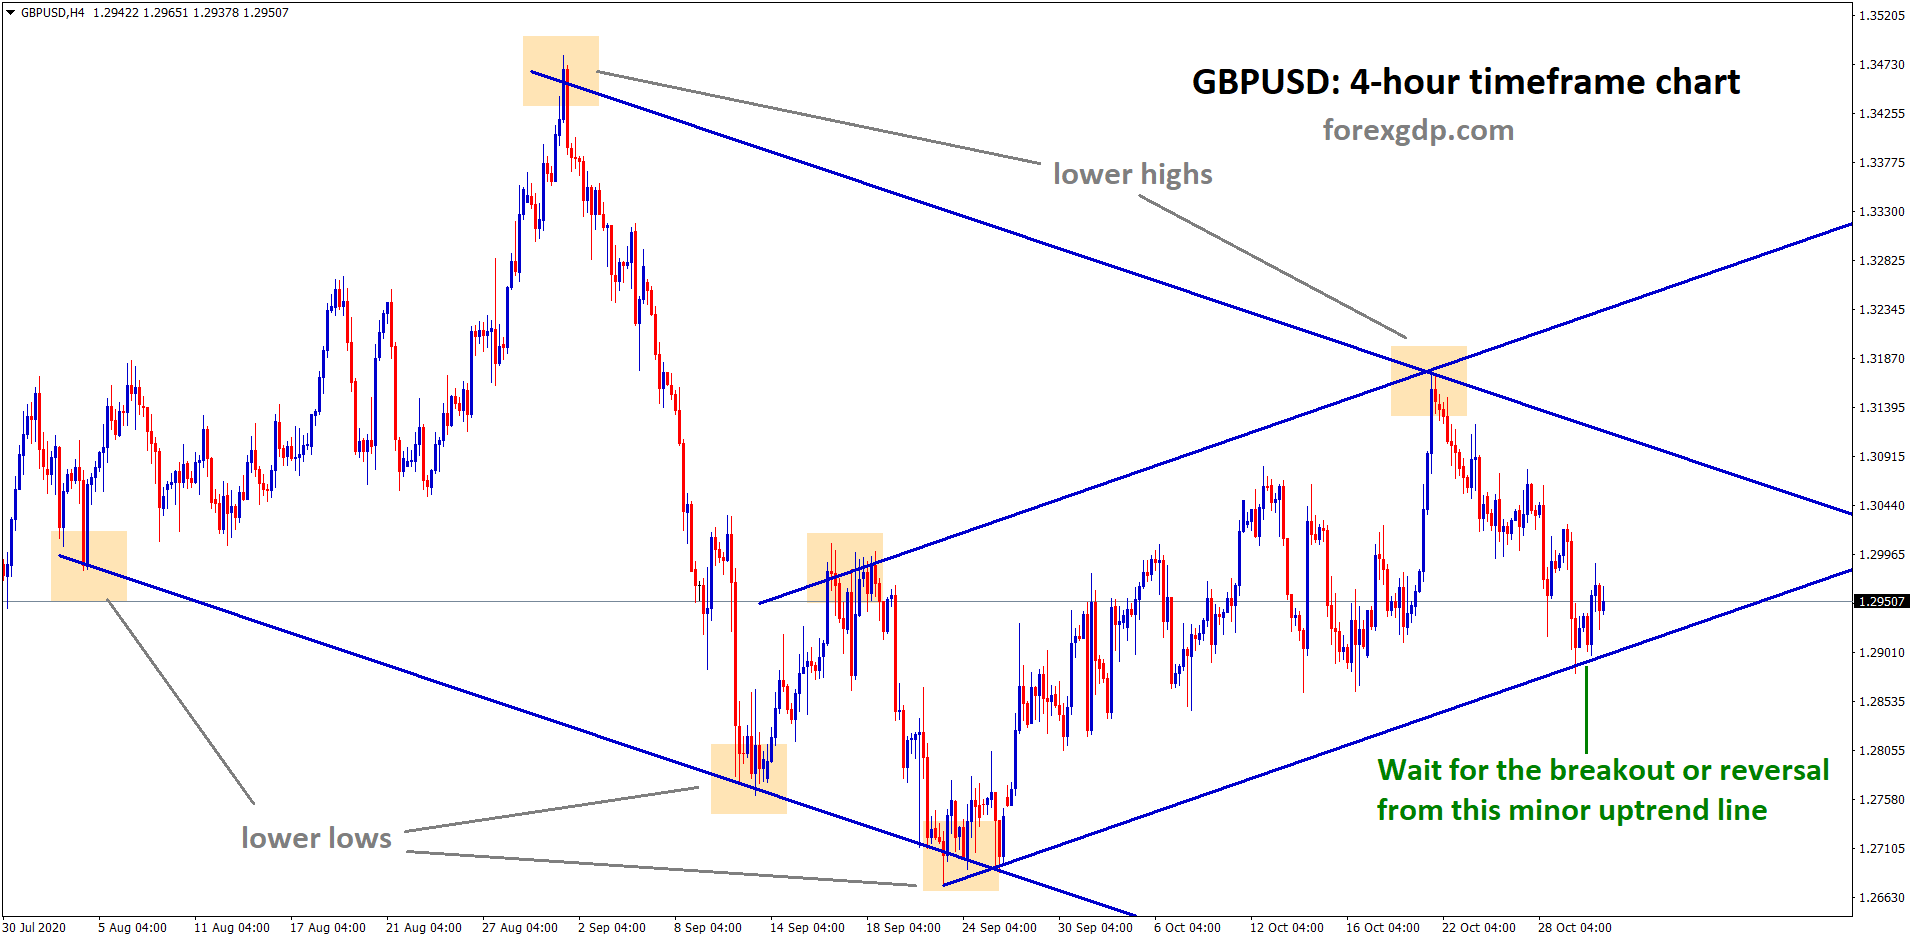 gbpusd 4hour minor uptrend in the strong downtrend